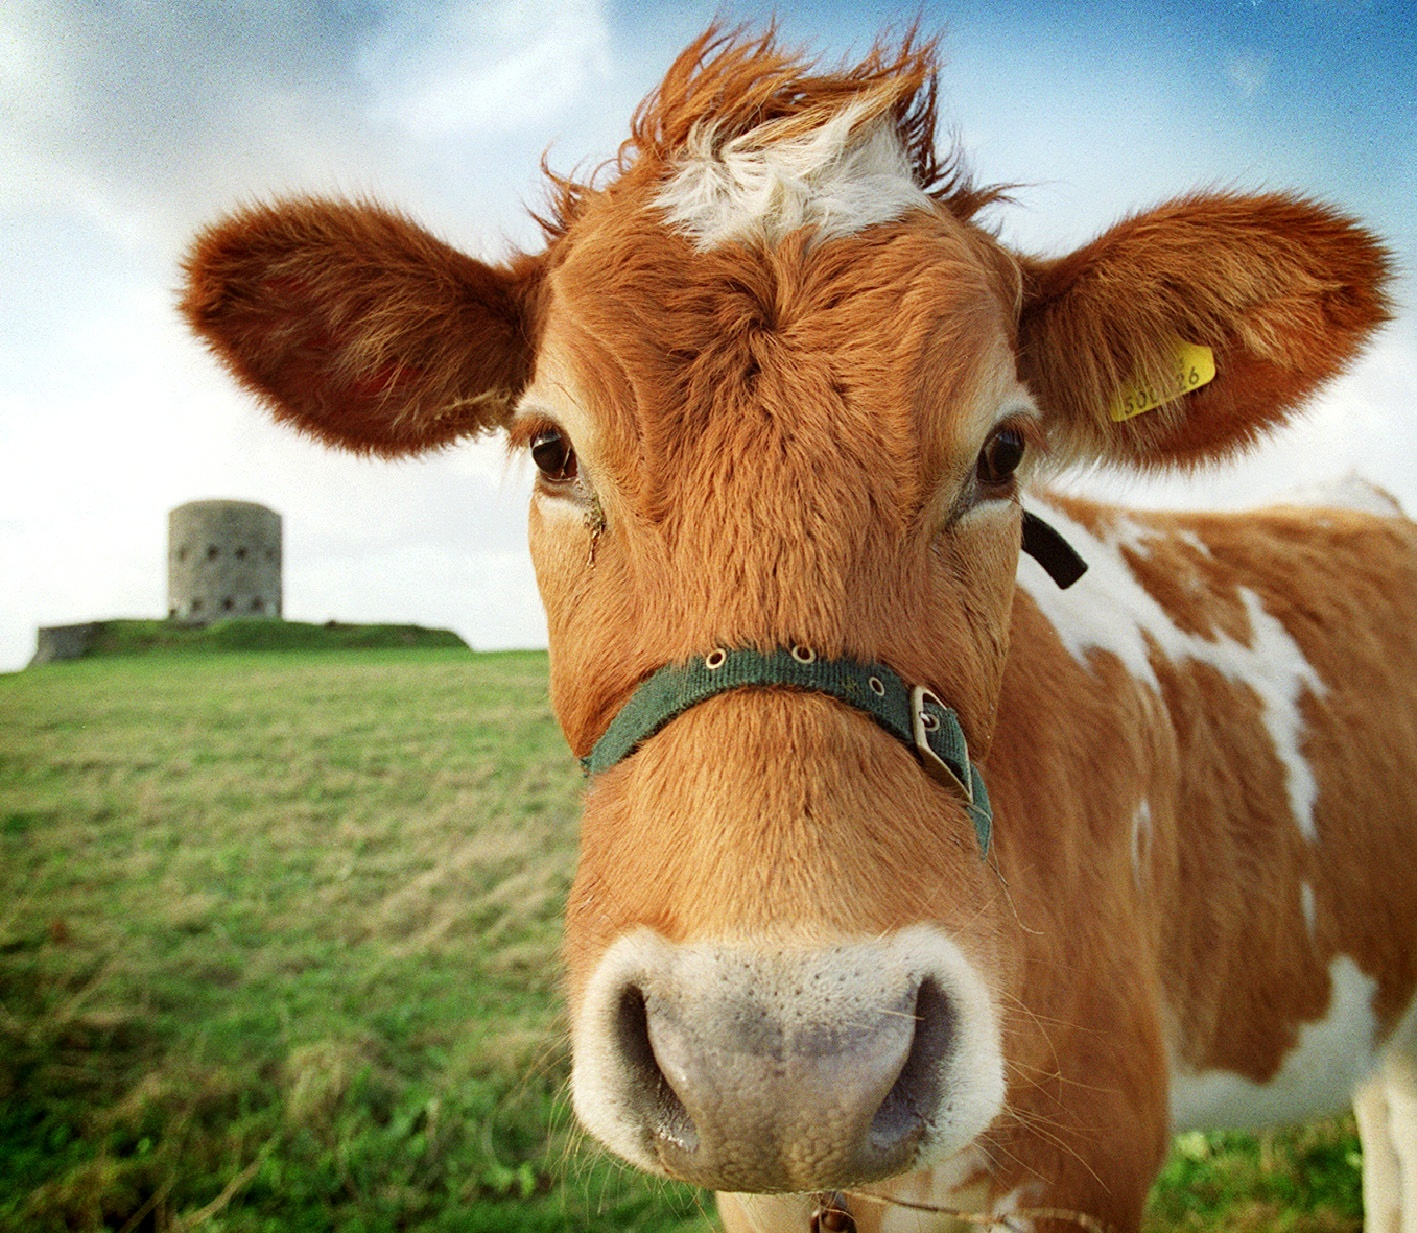 Whats the latin name for Guernsey cattle?